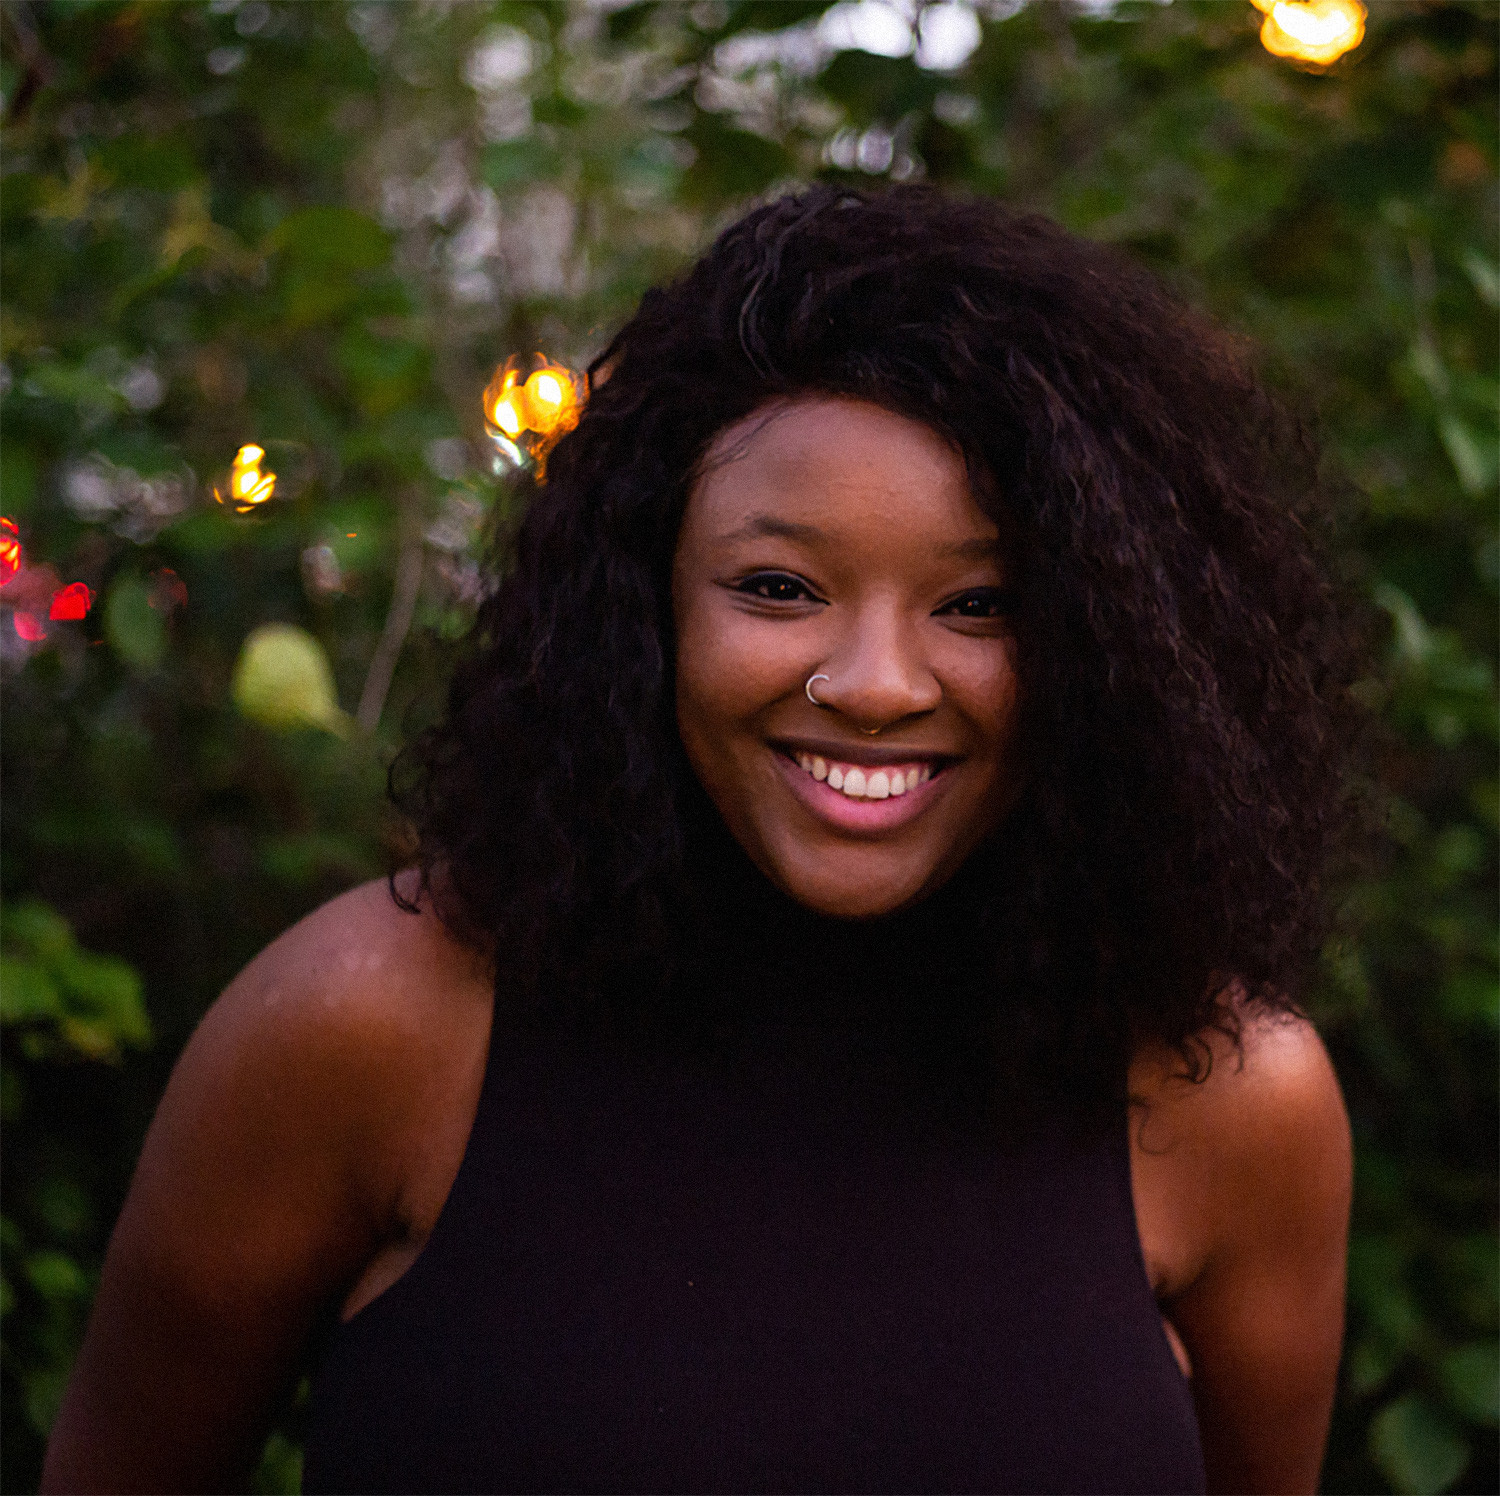 Leah Johnson, author of You Should See Me in a Crown. Leah is a Black woman with curly hair and a nosering. She wears a black mockneck tank top and smiles at the camera.